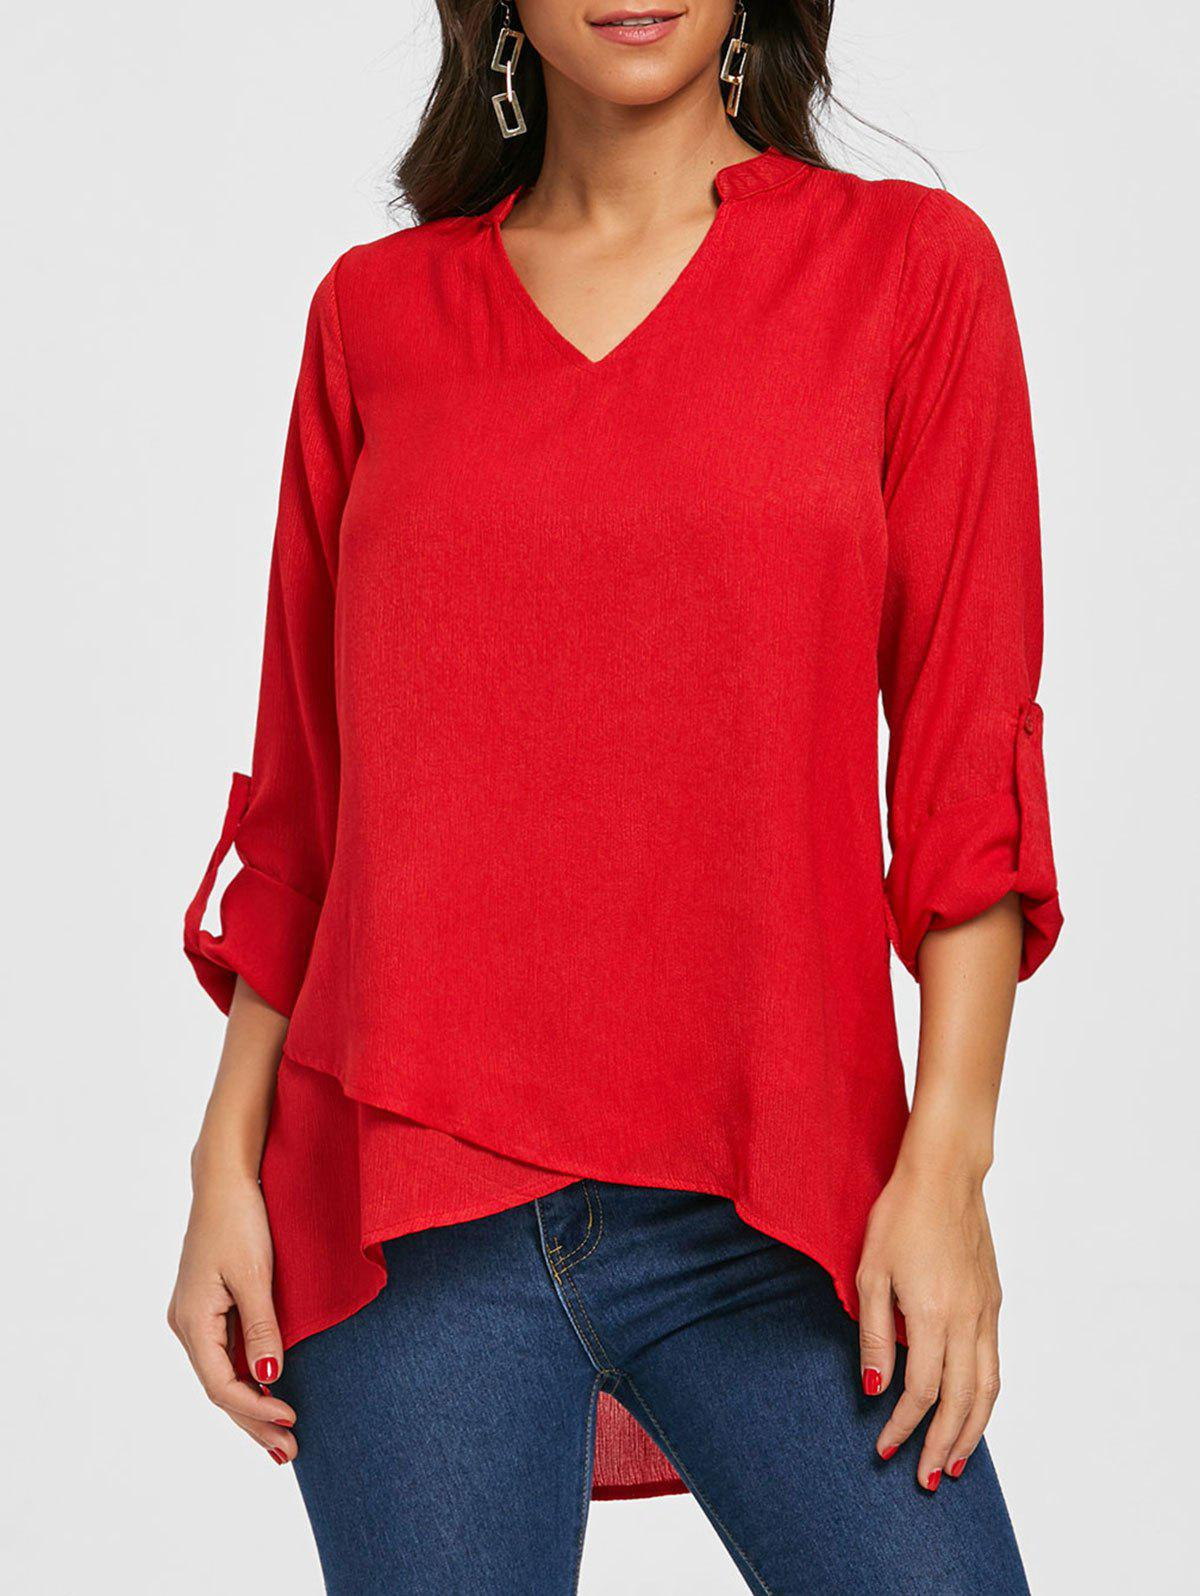 V Neck Asymmetric Tunic Blouse - RED XL